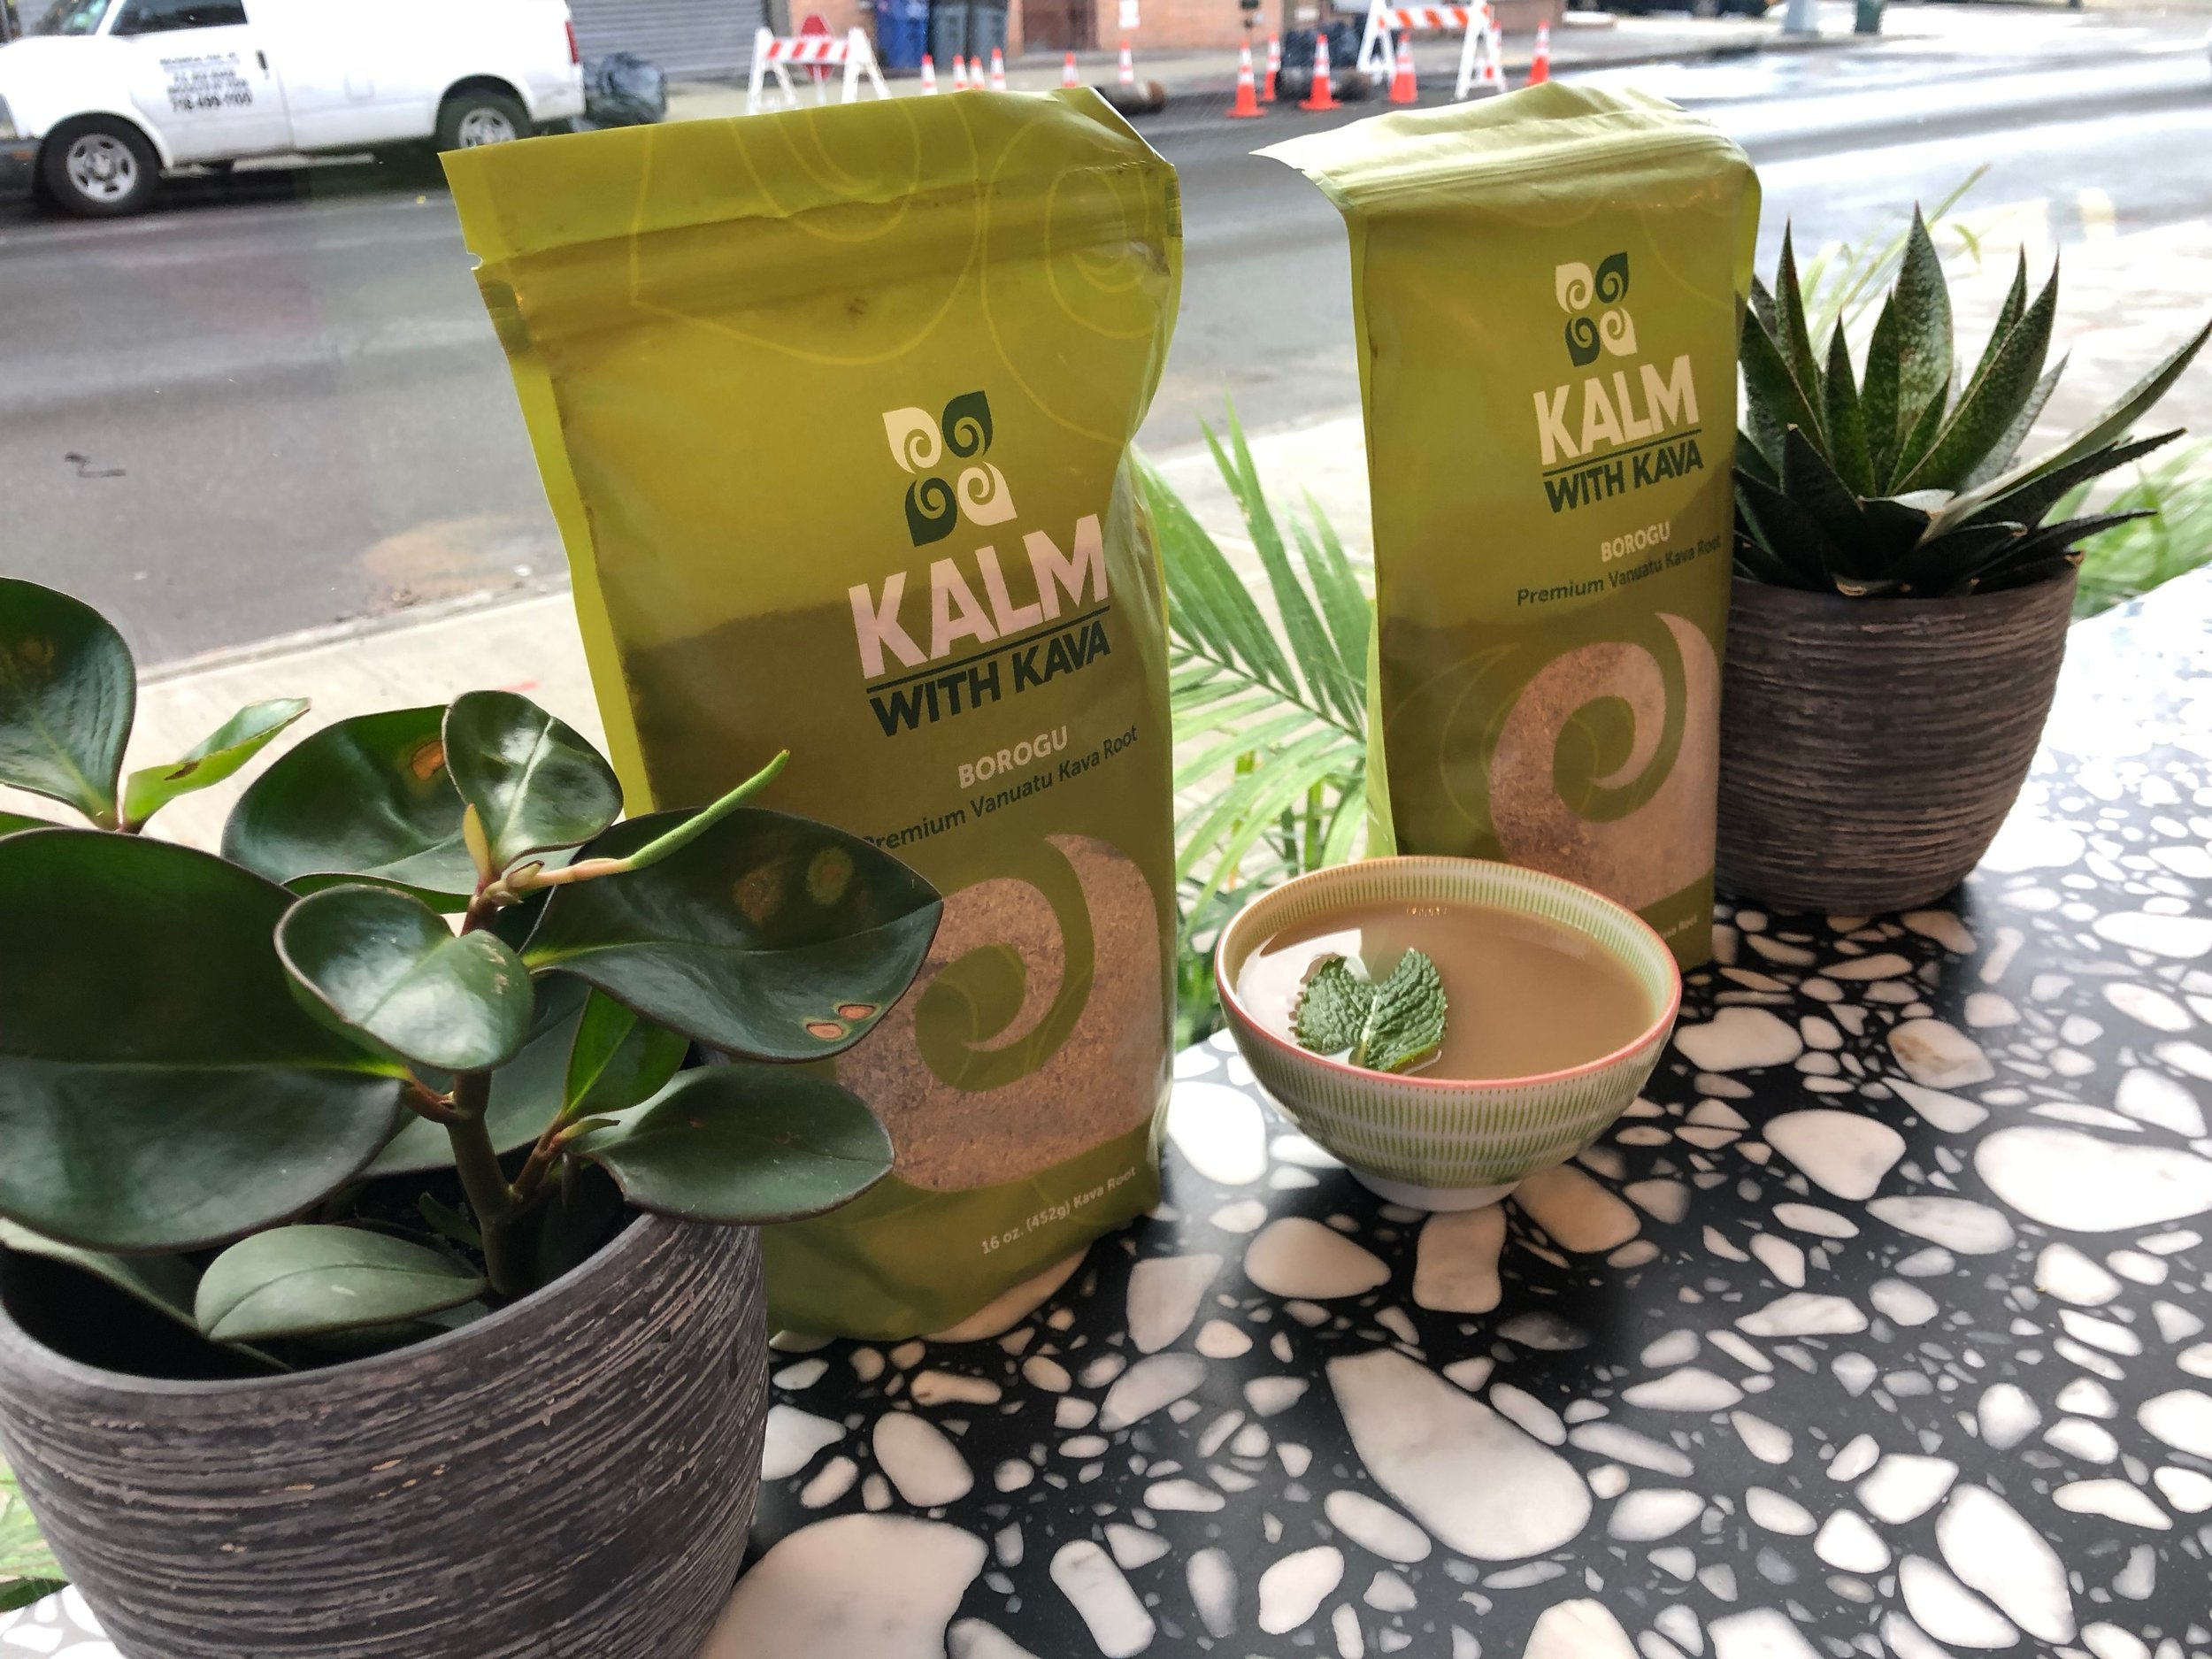 What is KAVA? - Kava is a small shrub native to the South Pacific islands. The root and stems are made into a non-alcoholic beverage good for psychological and physiological relaxation. Islanders have used the kava kava plant for centuries in social rituals, religious ceremonies and for medicinal purposes. We invite you to relax and converse with us over a bowl (or two!) of kava. Bula!